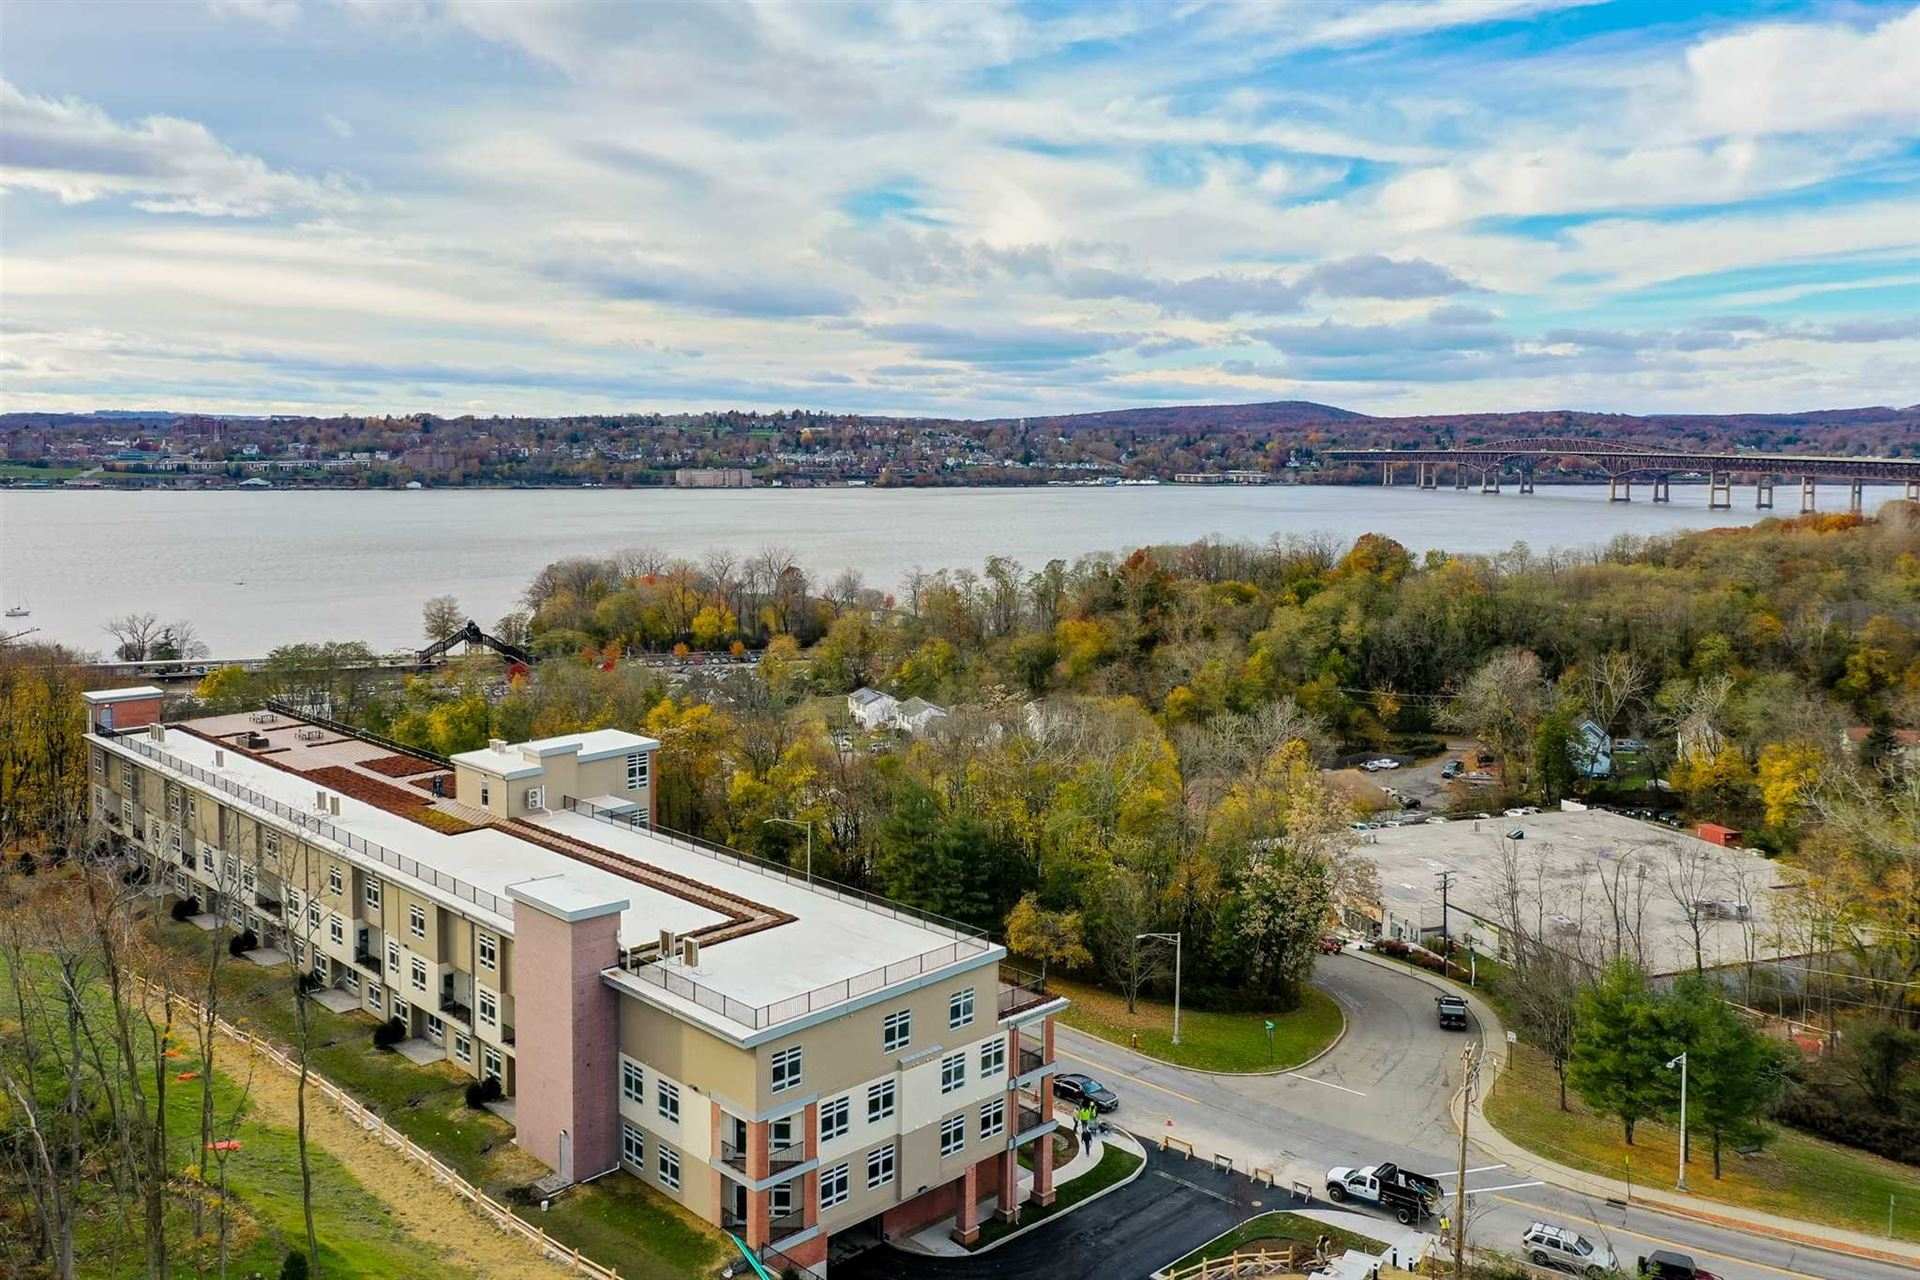 30 BEEKMAN PH2, Beacon, NY 12508 - #: 397382